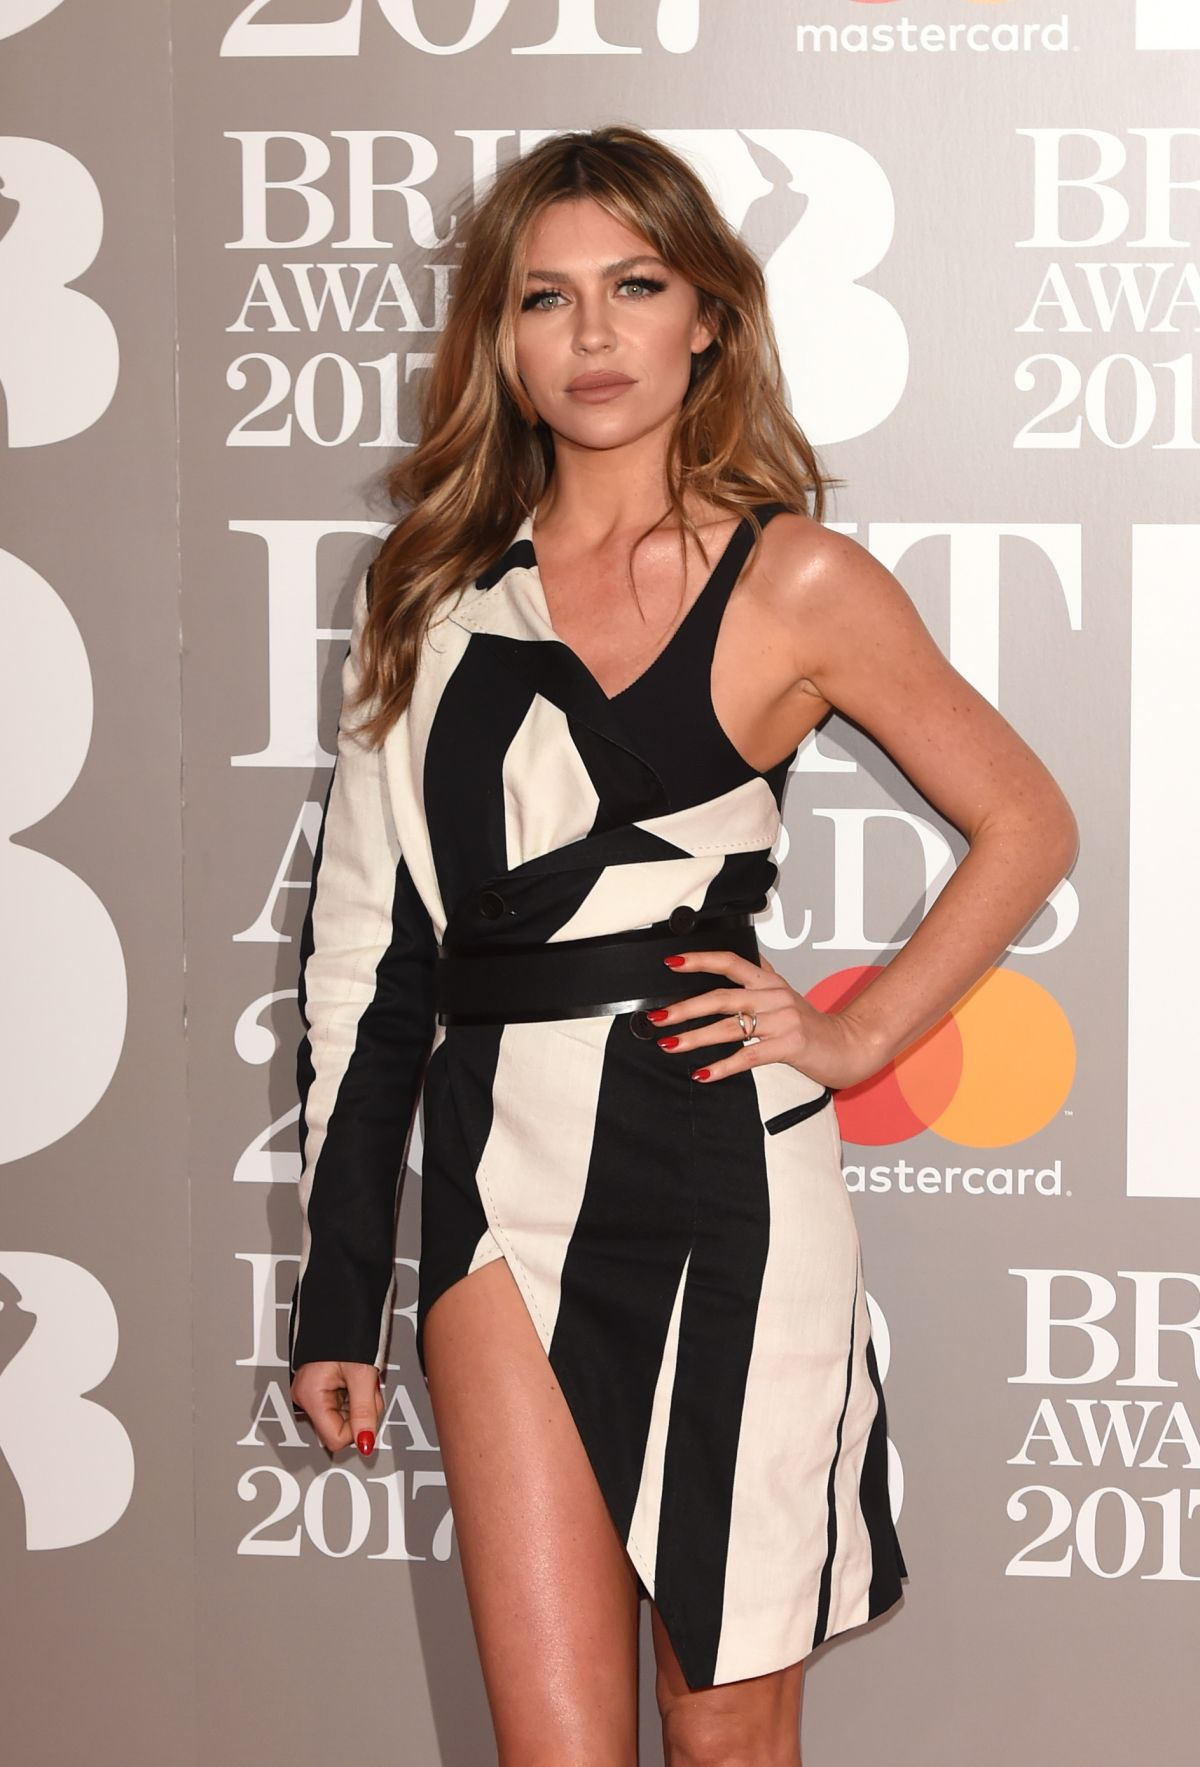 ABIGAIL ABBEY CLANCY at Brit Awards 2017 in London 02/22/2017